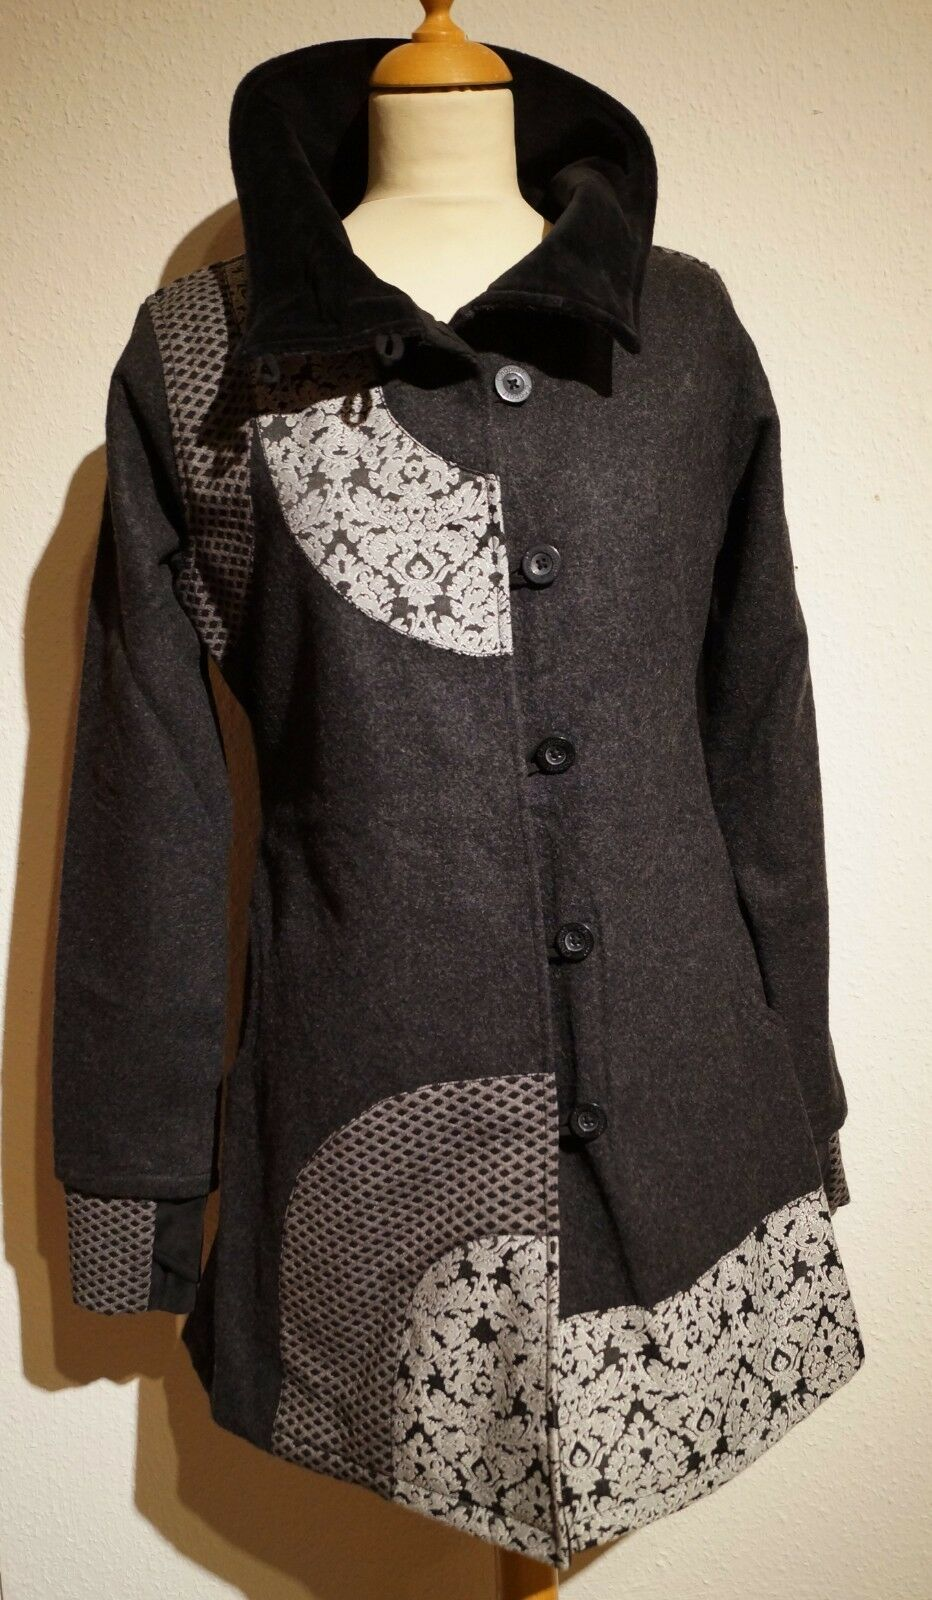 Chapati Woollen Coat short Coat Slightly Fitted G-7793 328 1 12FT - XL